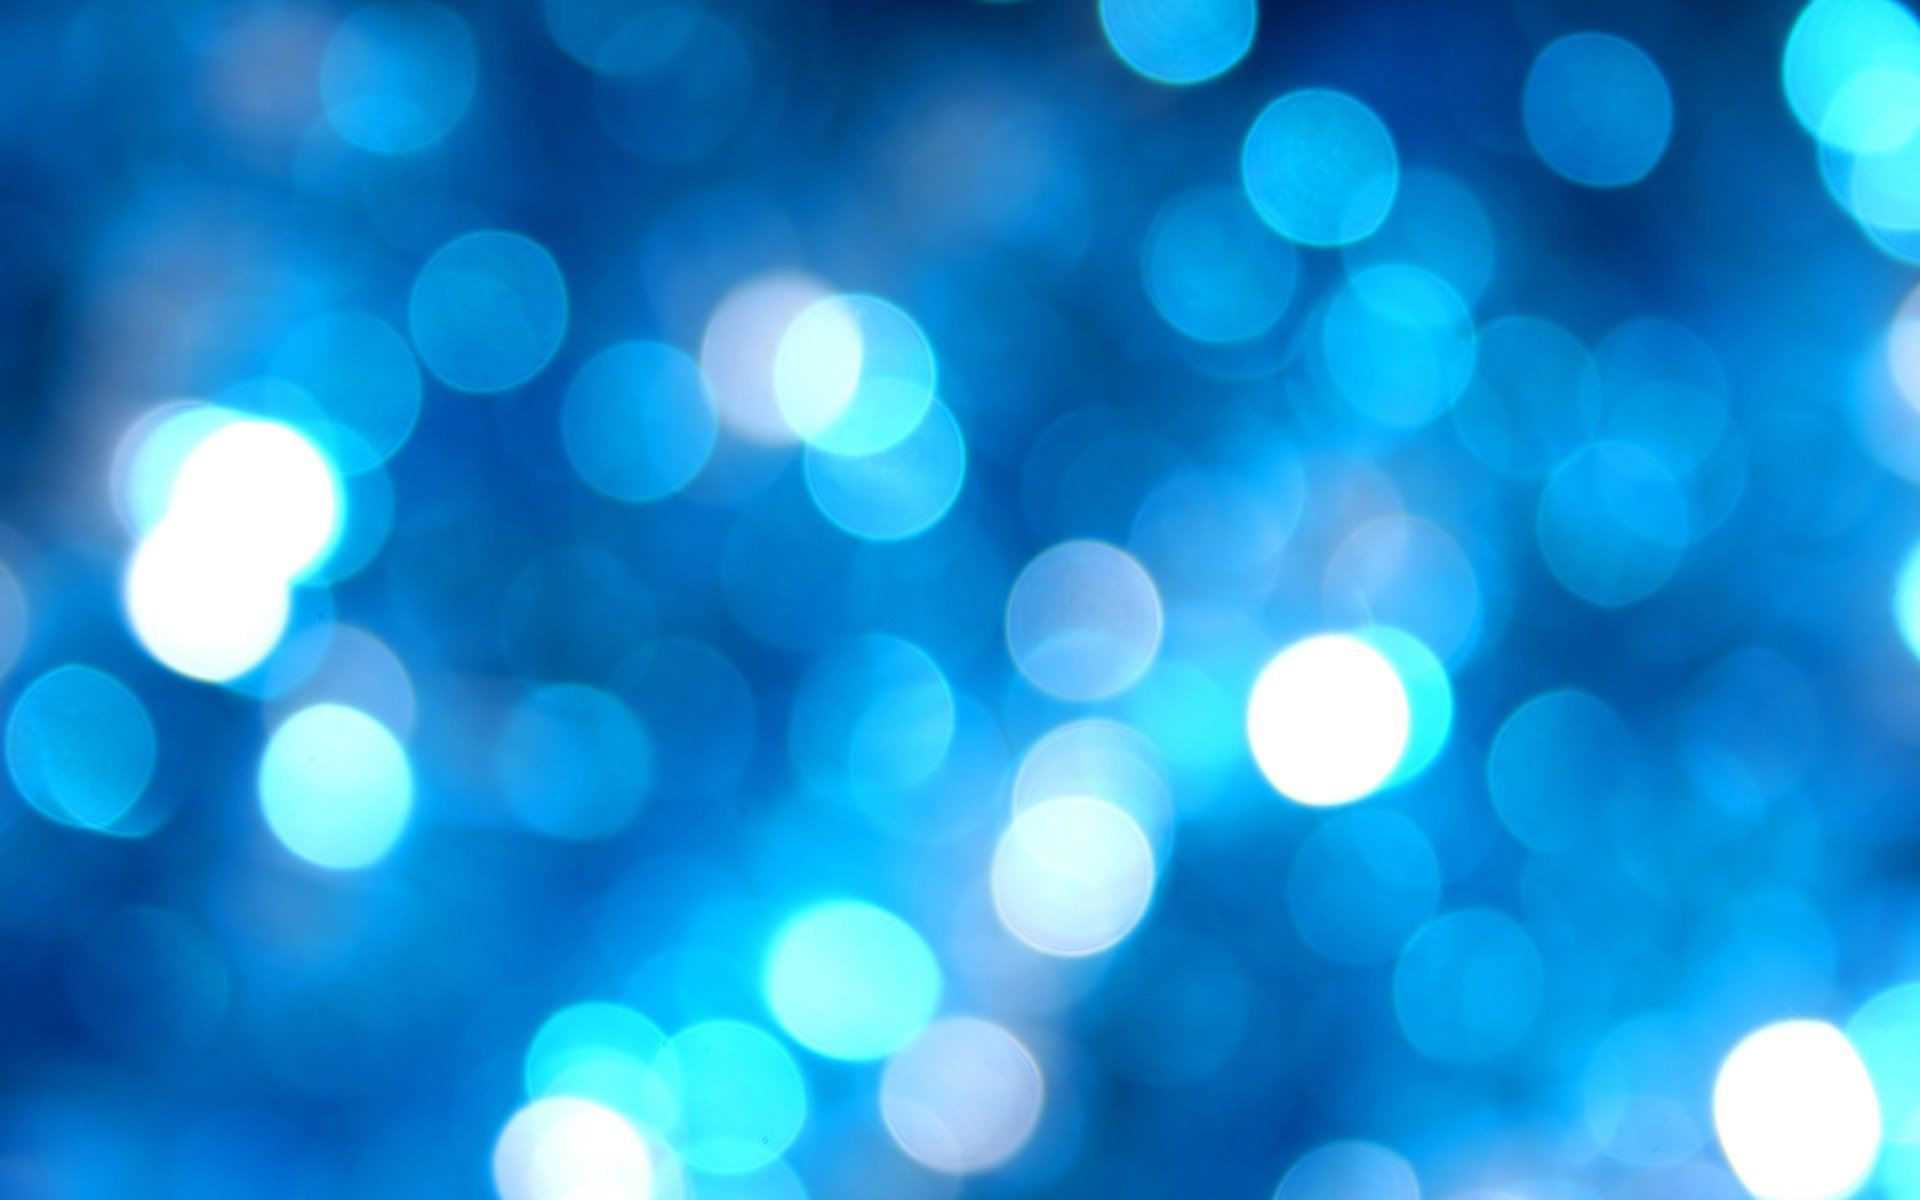 Blue_Dots_1920x1200_cool_twitter_backgrounds